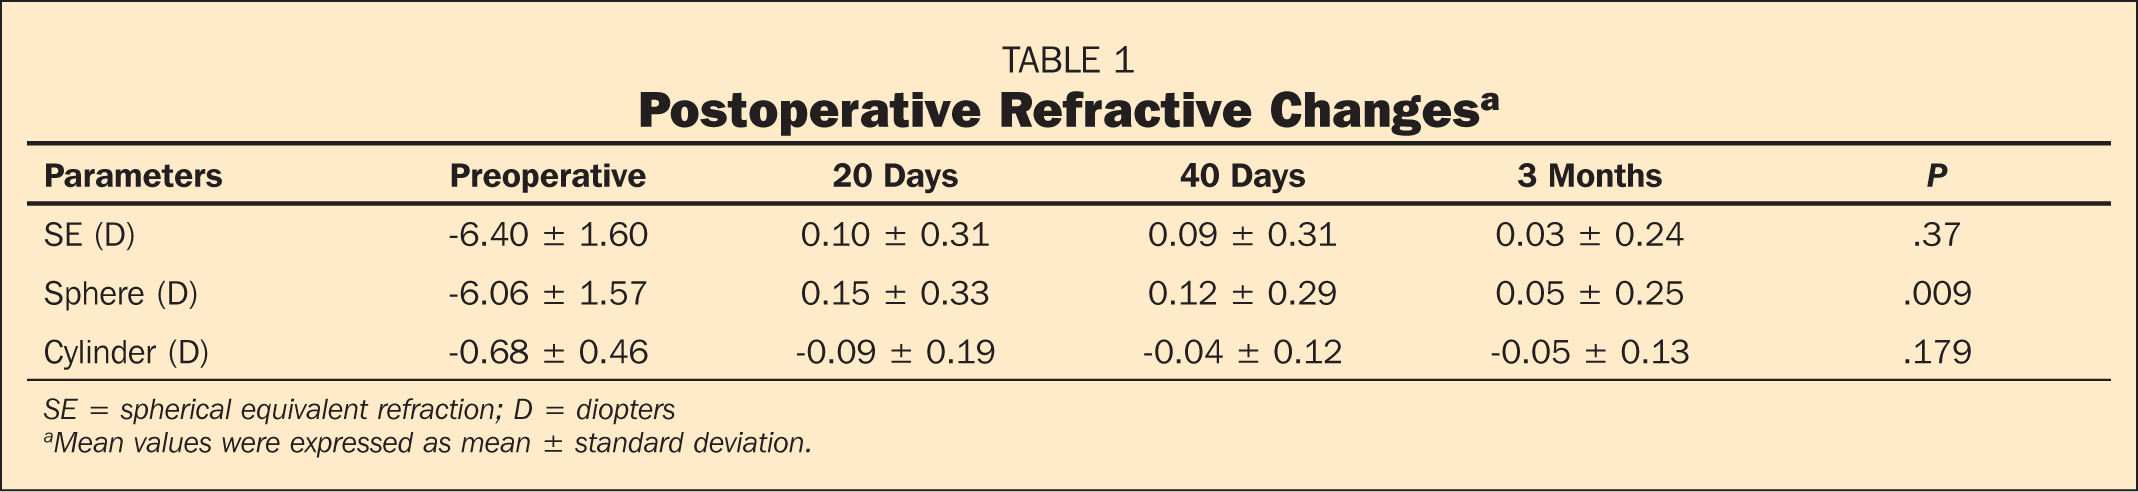 Postoperative Refractive Changesa